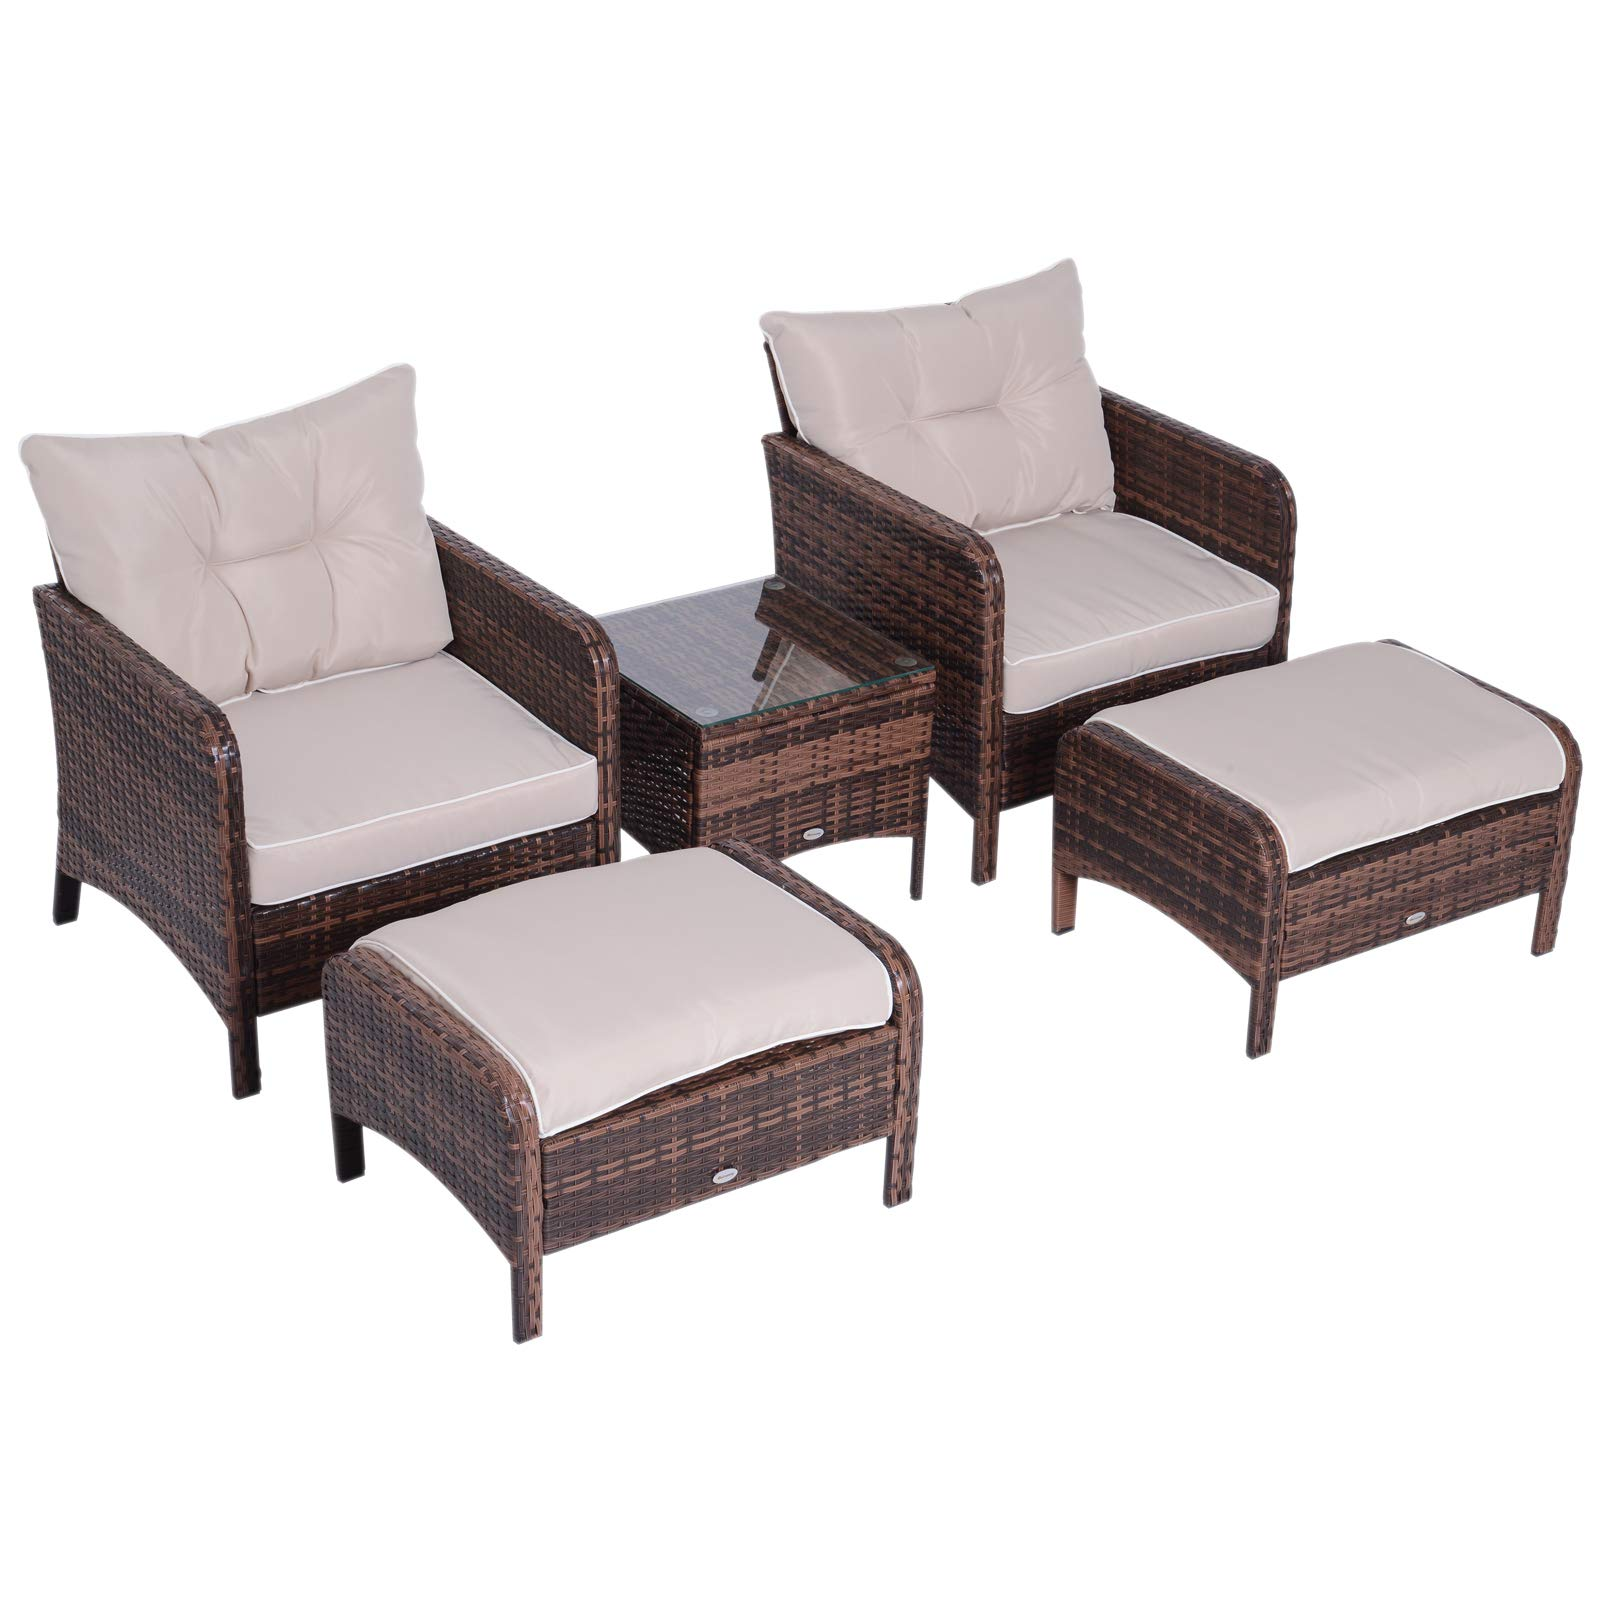 Outsunny 5 Piece Rattan Wicker Outdoor Patio Conversation Set with 2 Cushioned Chairs 2 Cushioned Ottomans and Glass End